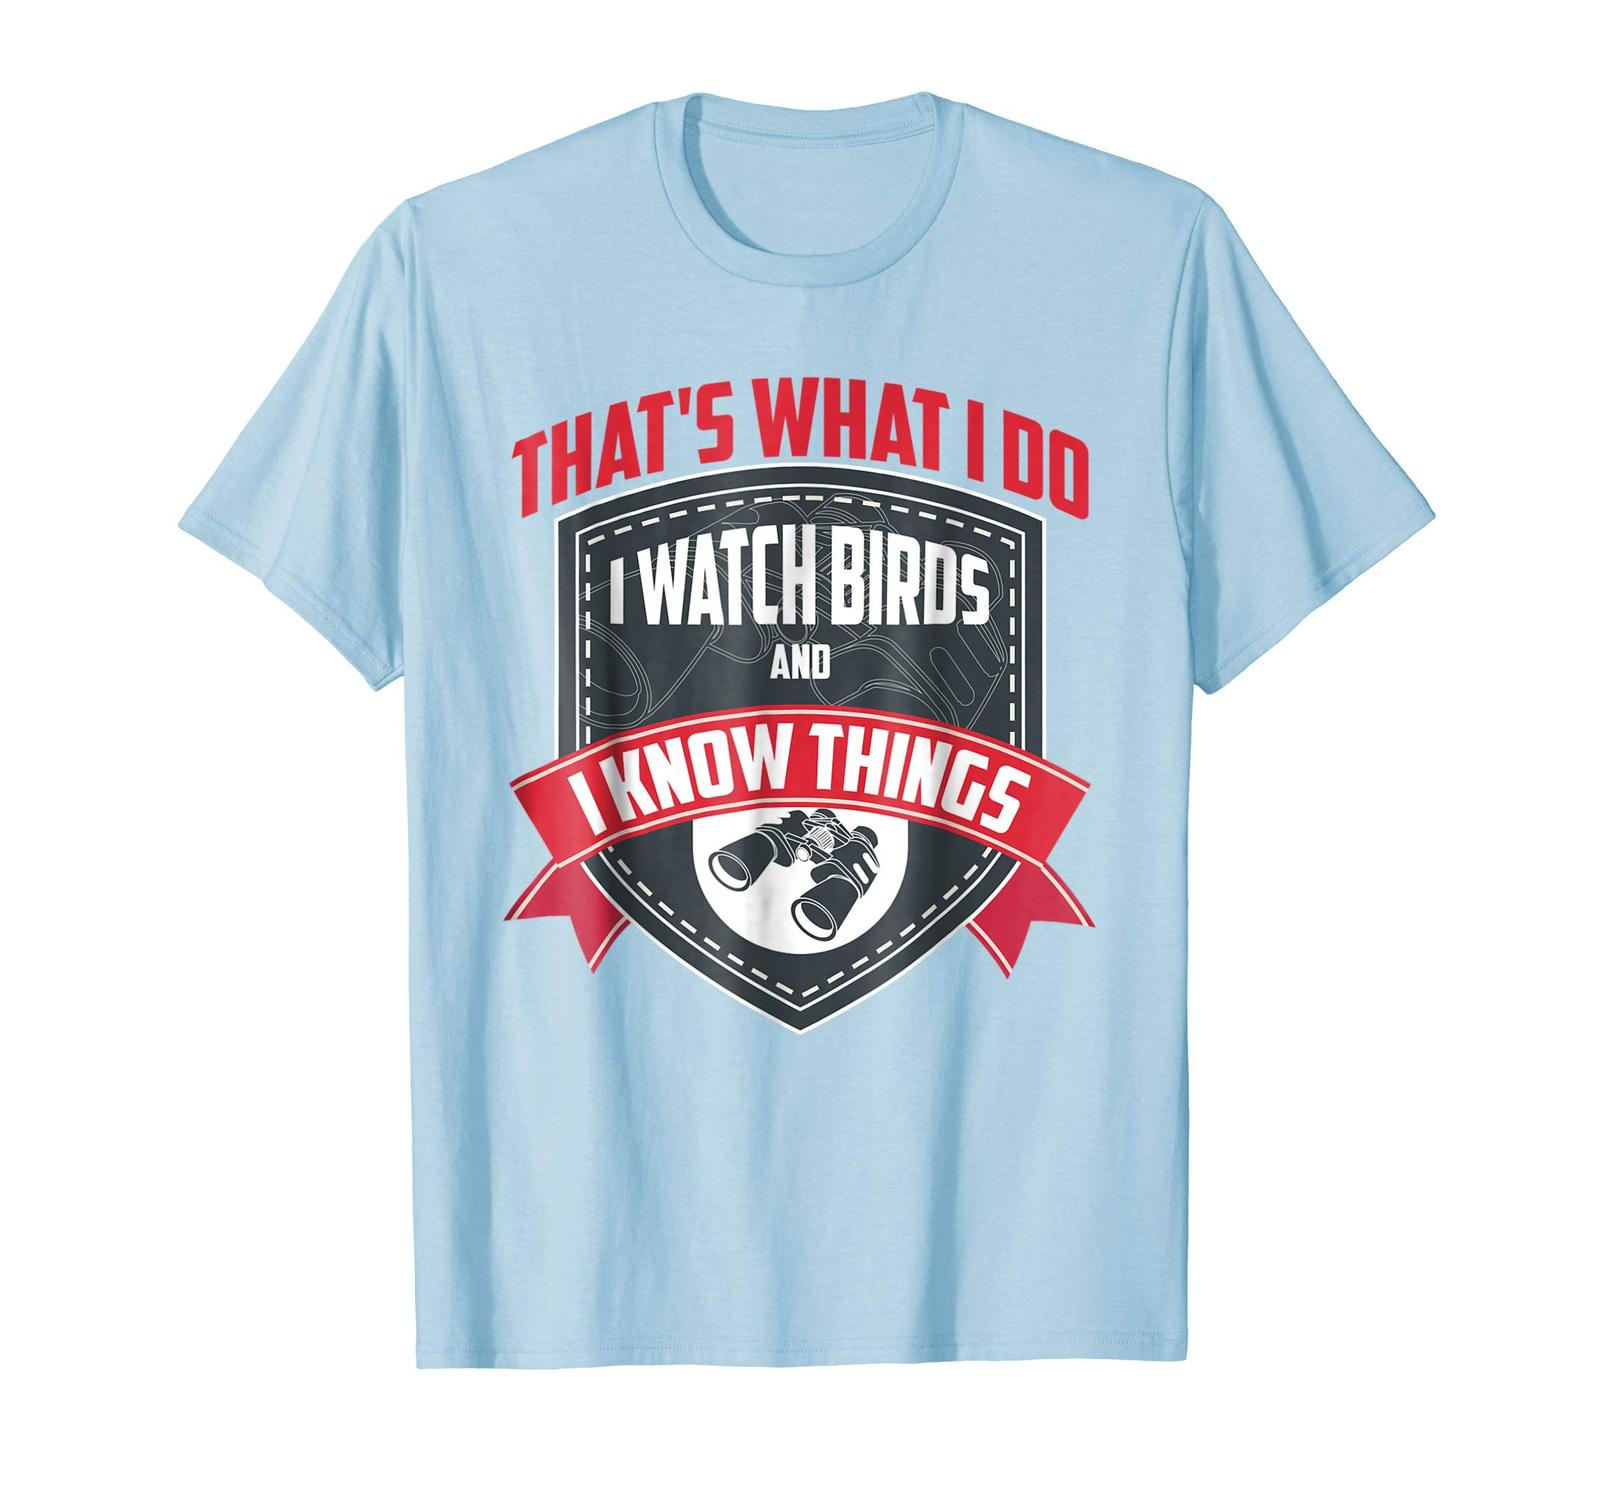 Primary image for Brother Shirts - Cute That's What I Do I Watch Birds And I Know Things Shirt Men